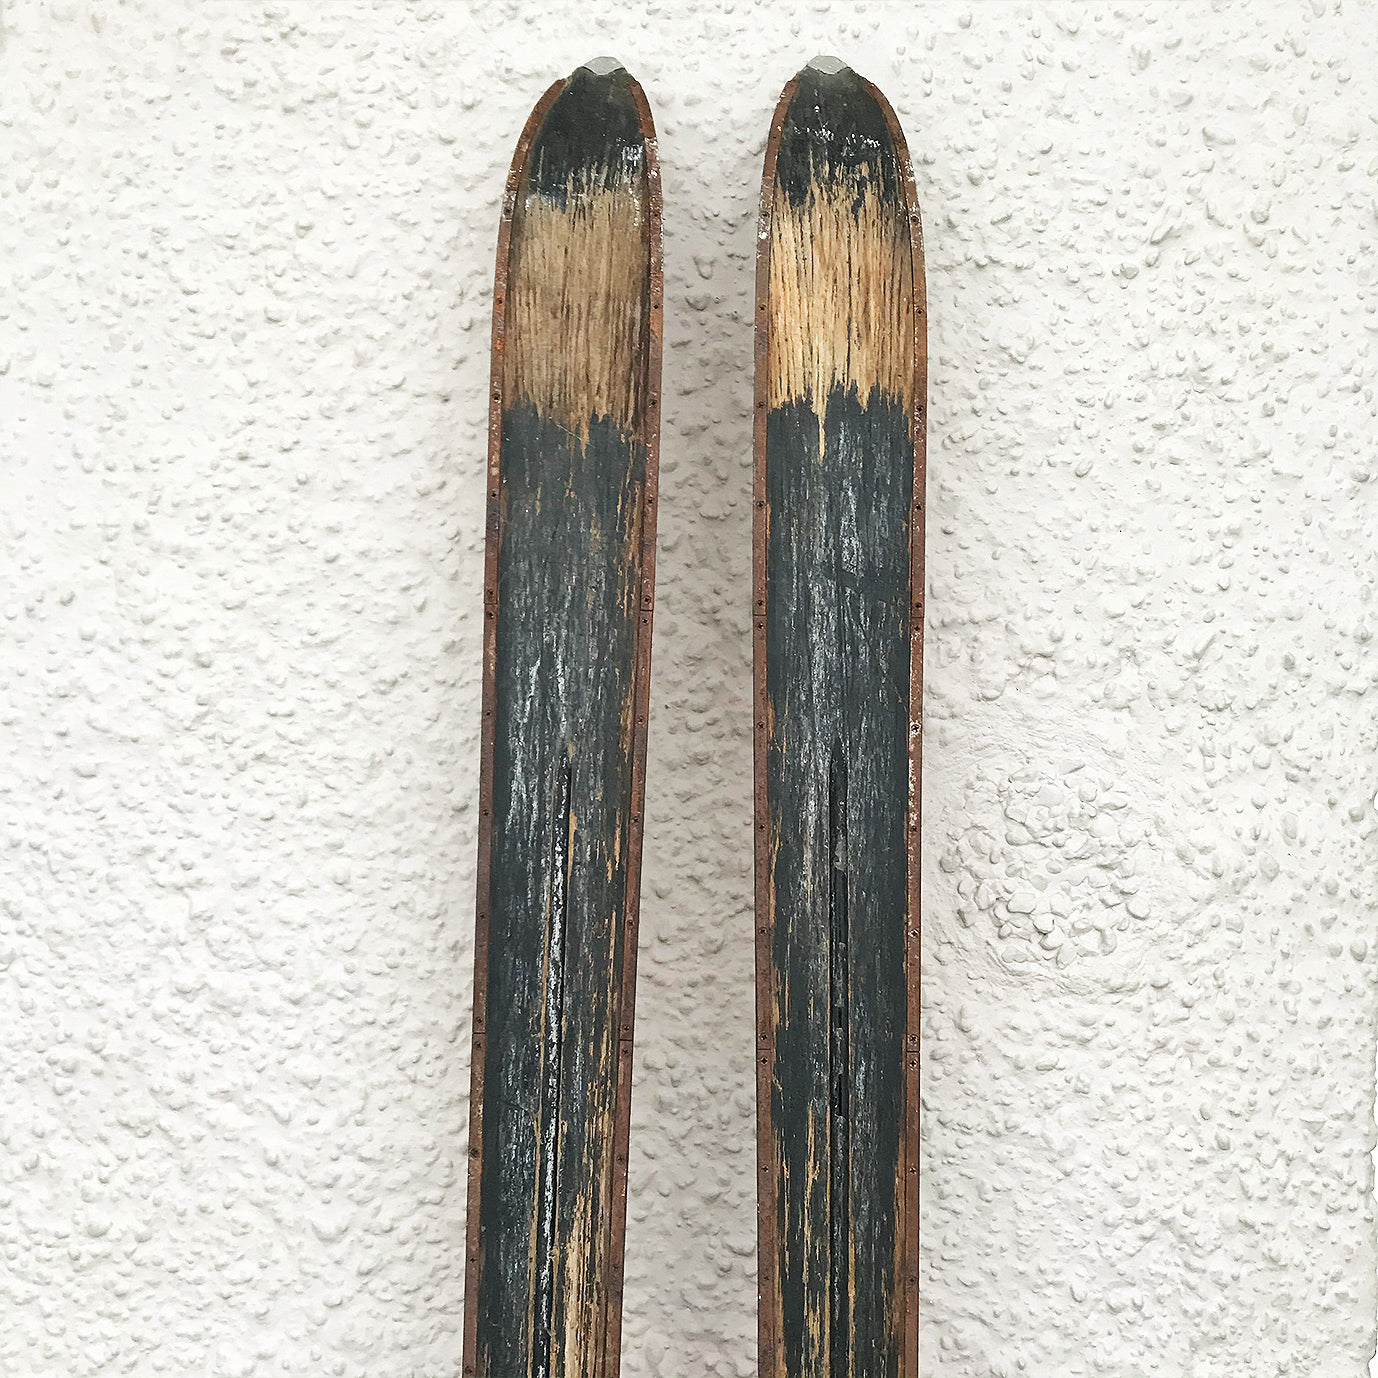 Good looking pair of Vintage Wooden Skis by ESS - SHOP NOW - www.intovintage.co.uk